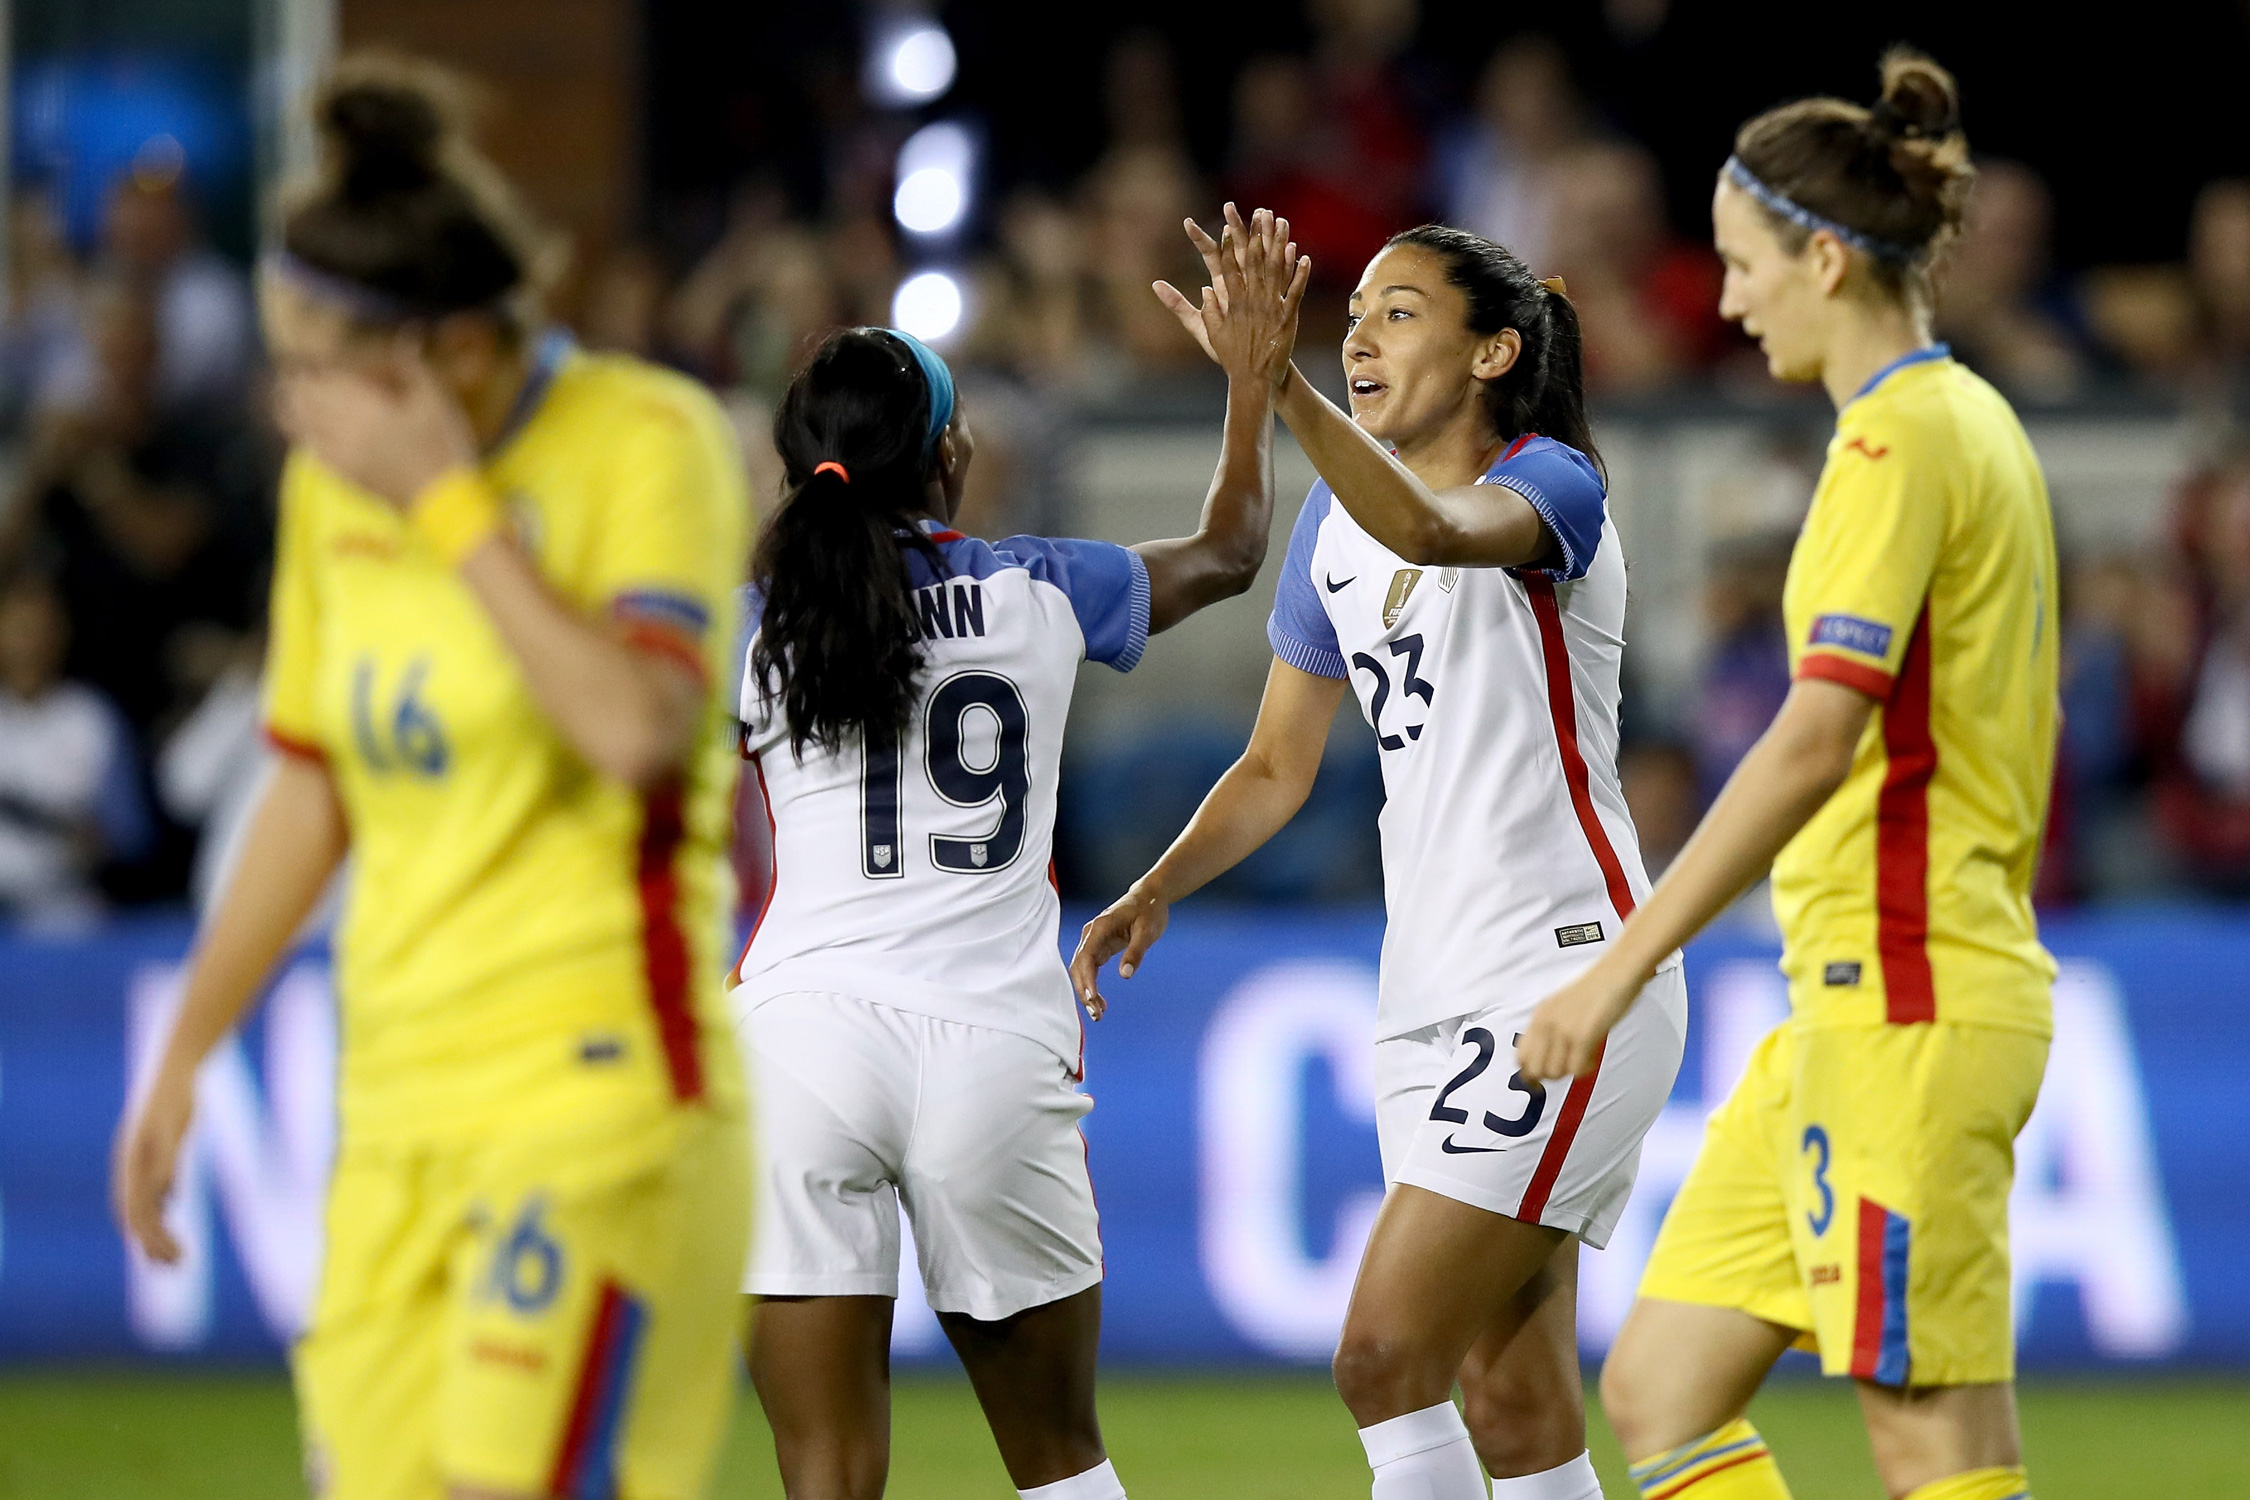 Crystal Dunn congratulates Christen Press on one of her three goals as the USA handled Romania with ease, winning 8-1 at Avaya Stadium in San Jose, California.